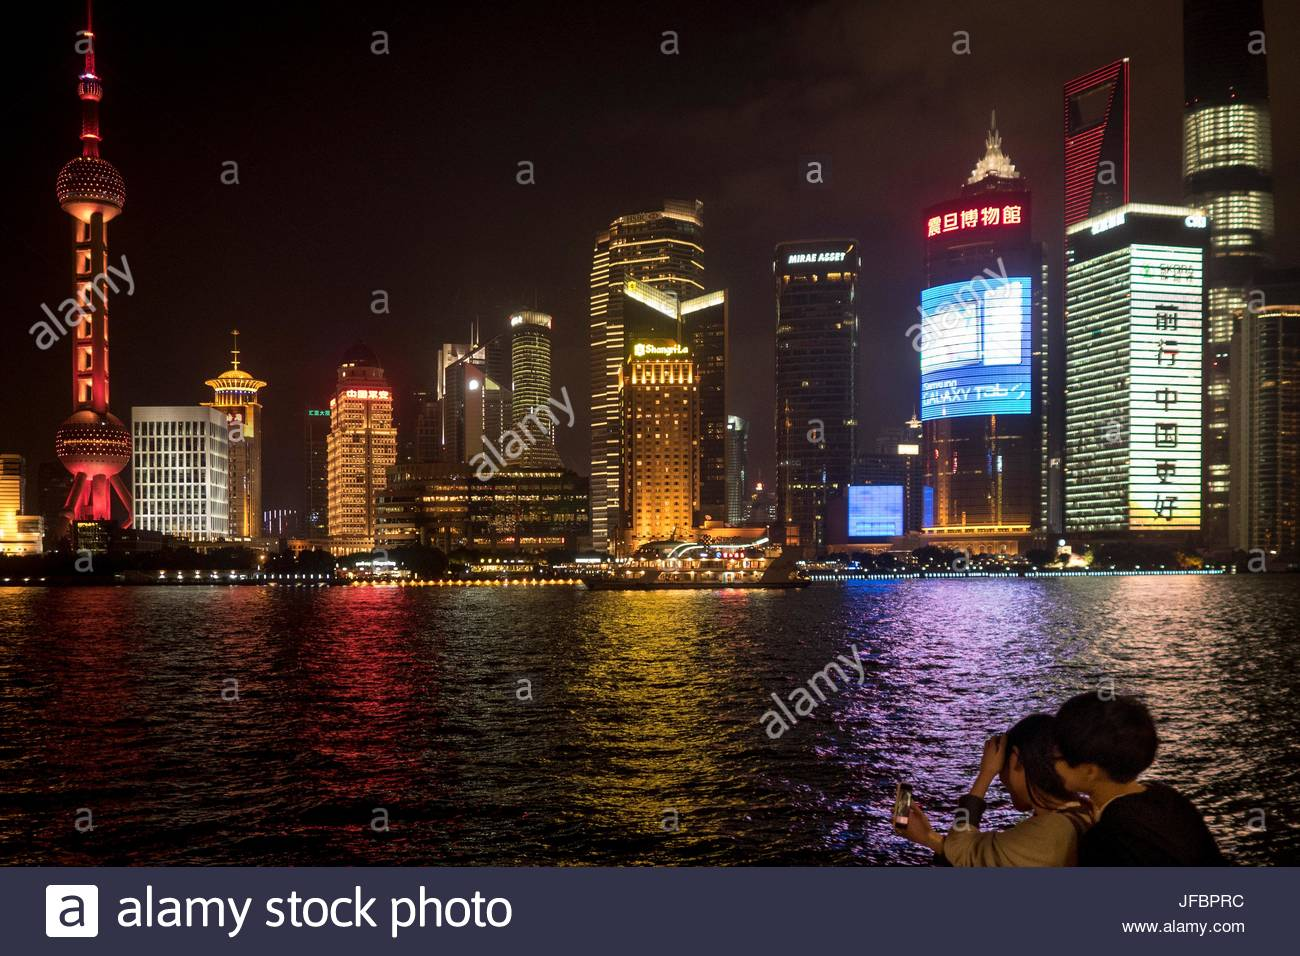 People taking a selfie on a cell phone on the Bund promenade. - Stock Image